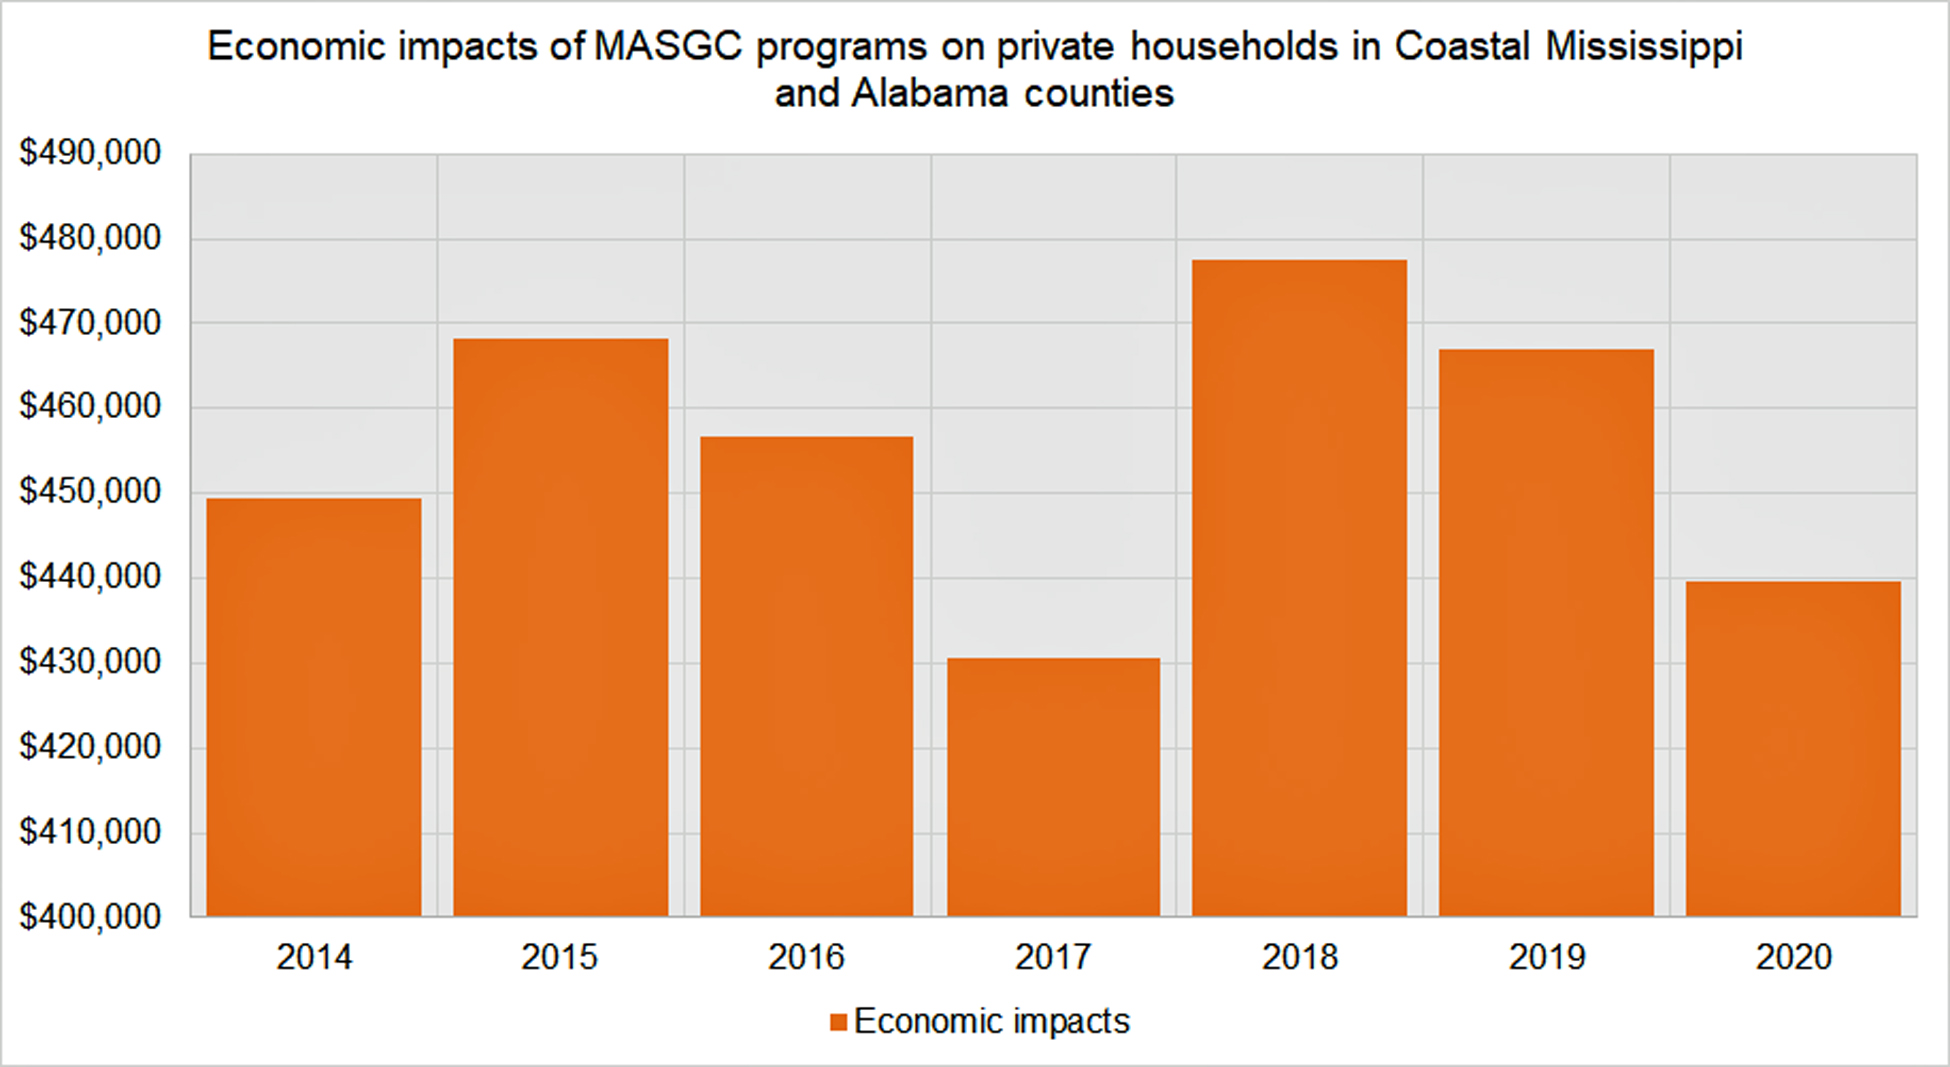 economic_impacts_of_masgc_programs_on_private_households_in_coastal_ms_and_al.jpg